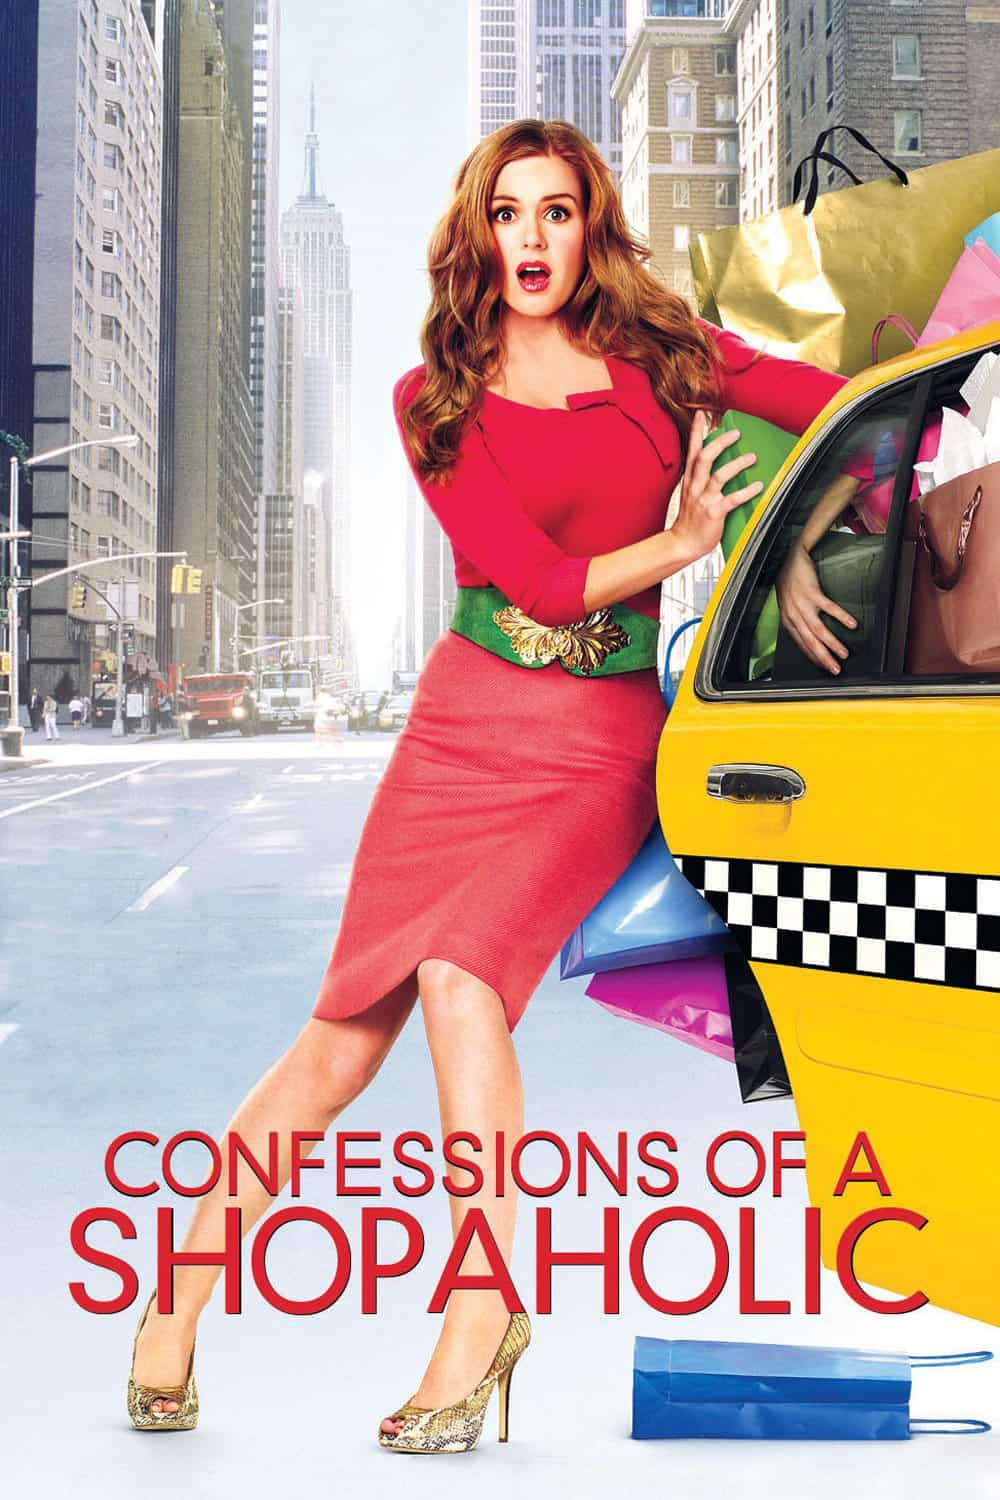 Confessions of a Shopaholic, 2009